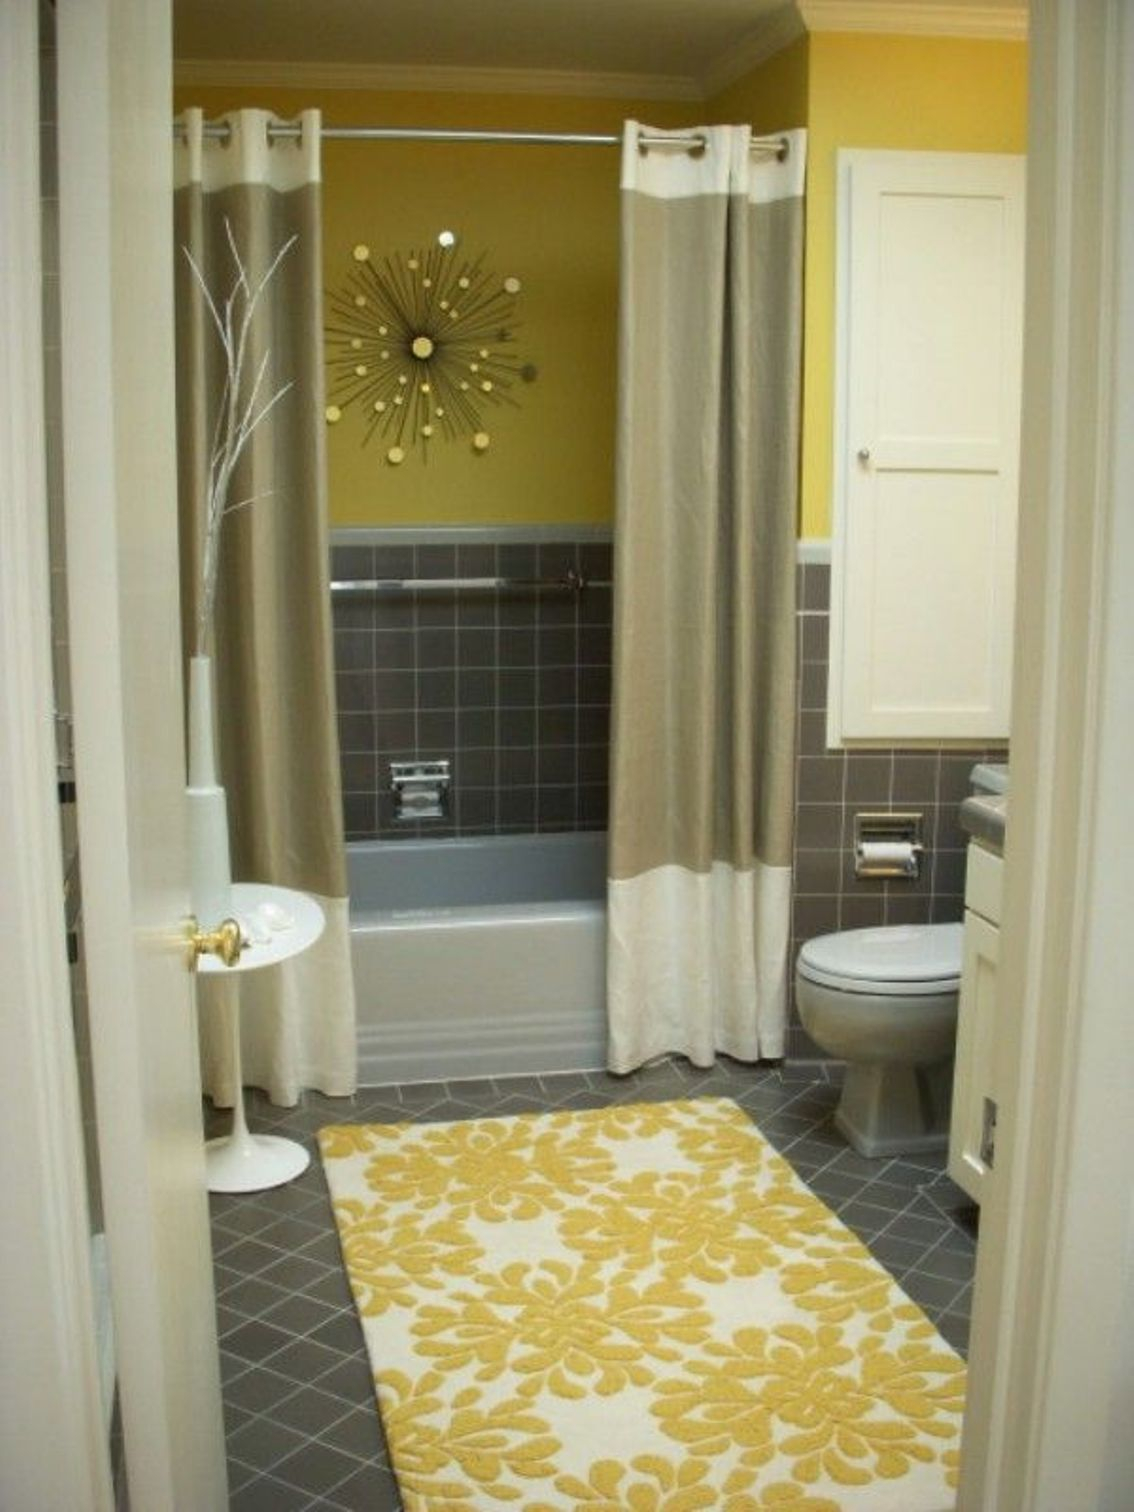 Pictures Of Small Bathrooms With Shower Curtains • Shower Curtains ...